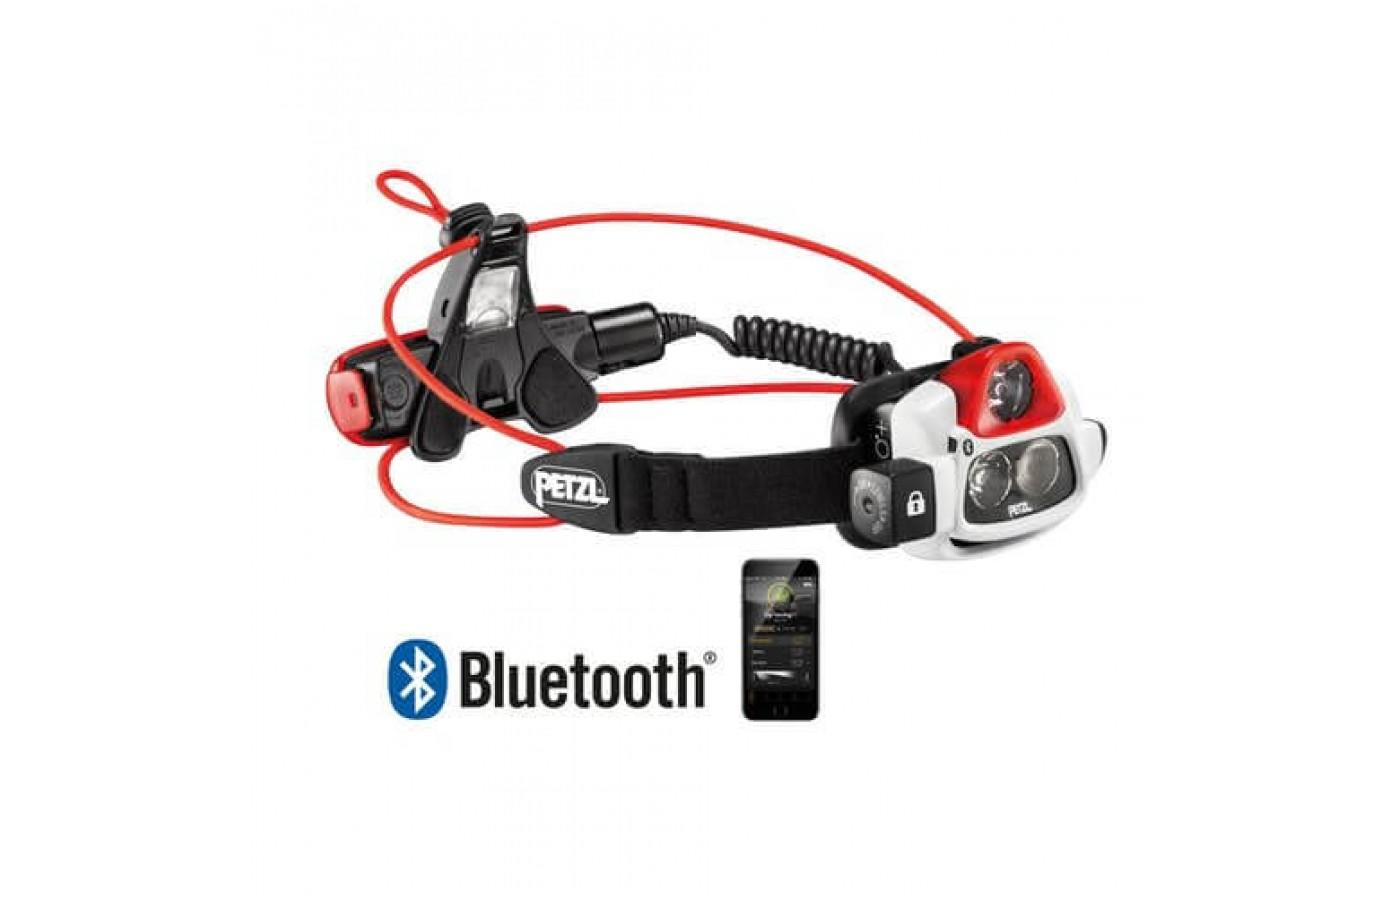 The Petzl NAO+ Headlamp is equipped with a rechargeable battery